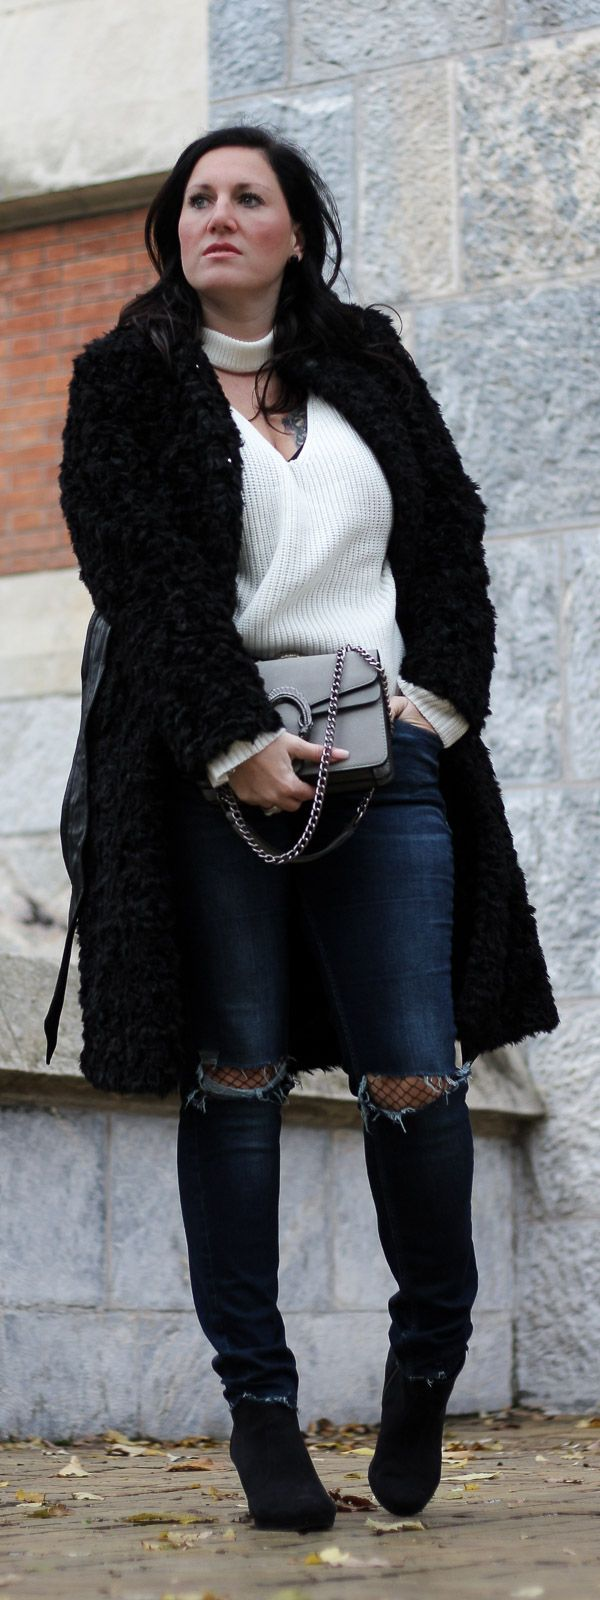 How to style: Outfit Fake Fur Coat and Knee-Cut Jeans. Trendy Street Style for the Winter.